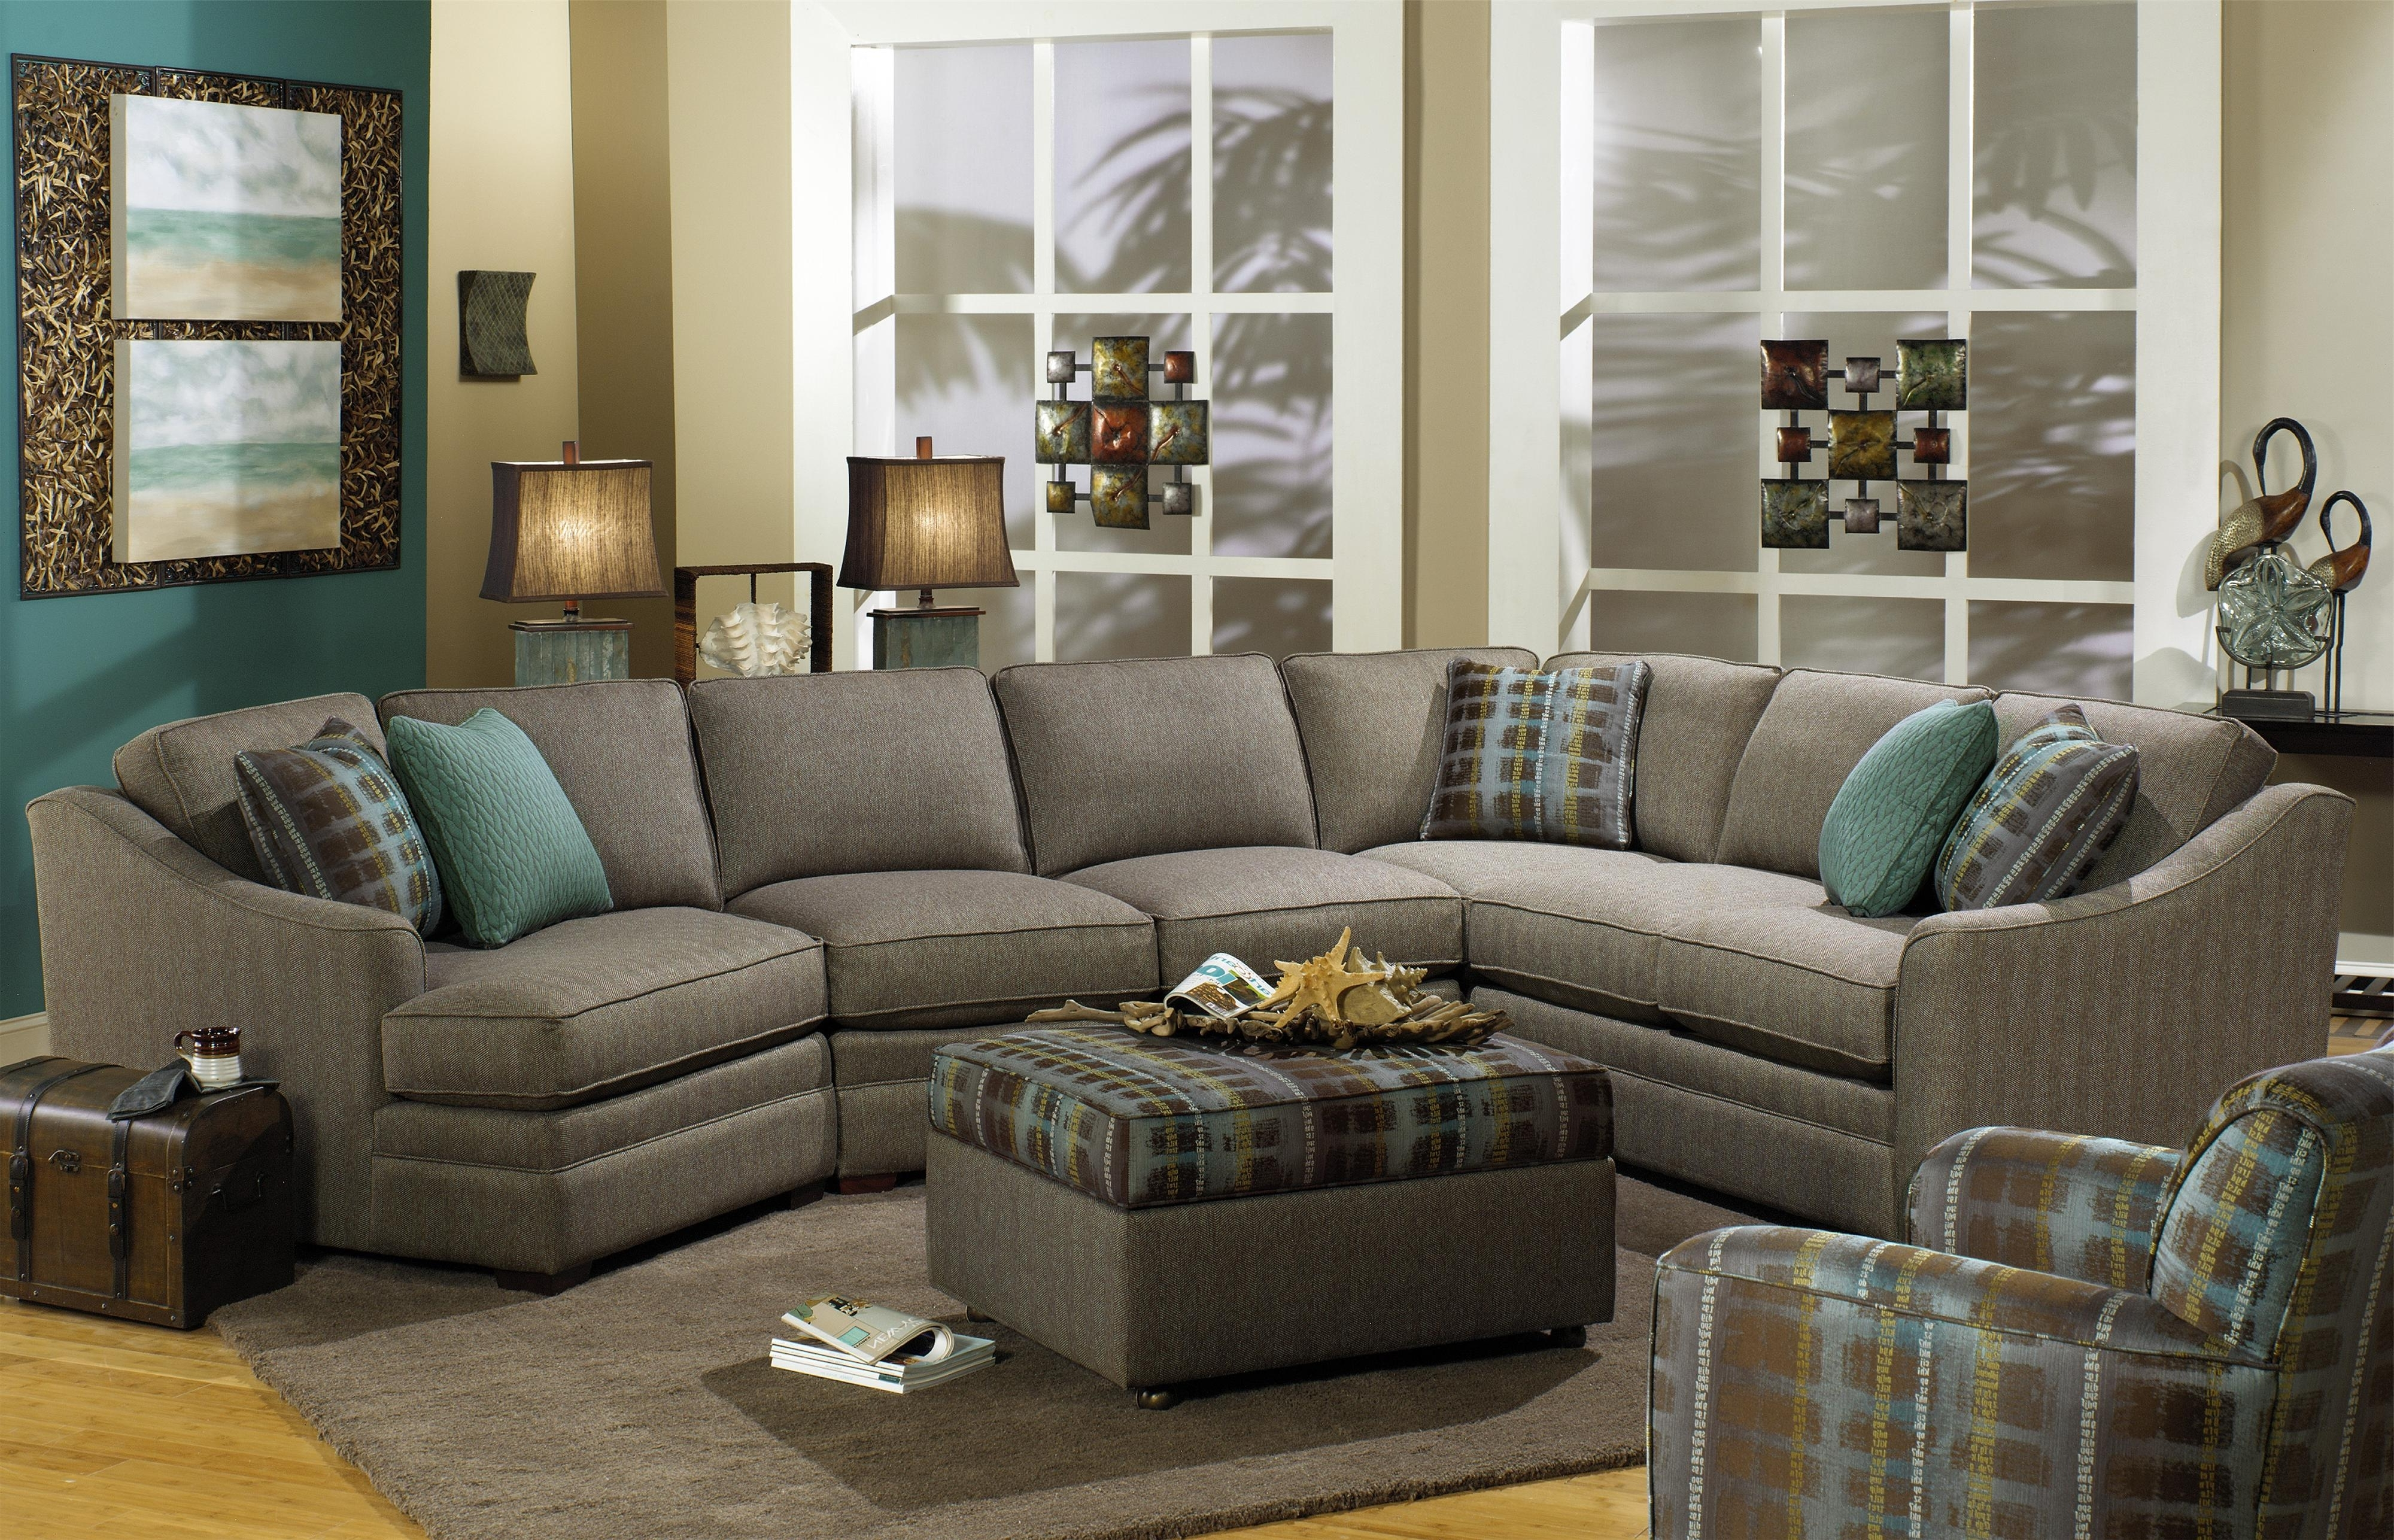 B>customizable</b> 3 Piece Sectional With Raf Cuddler In Famous Sectional Sofas With Cuddler (View 17 of 20)